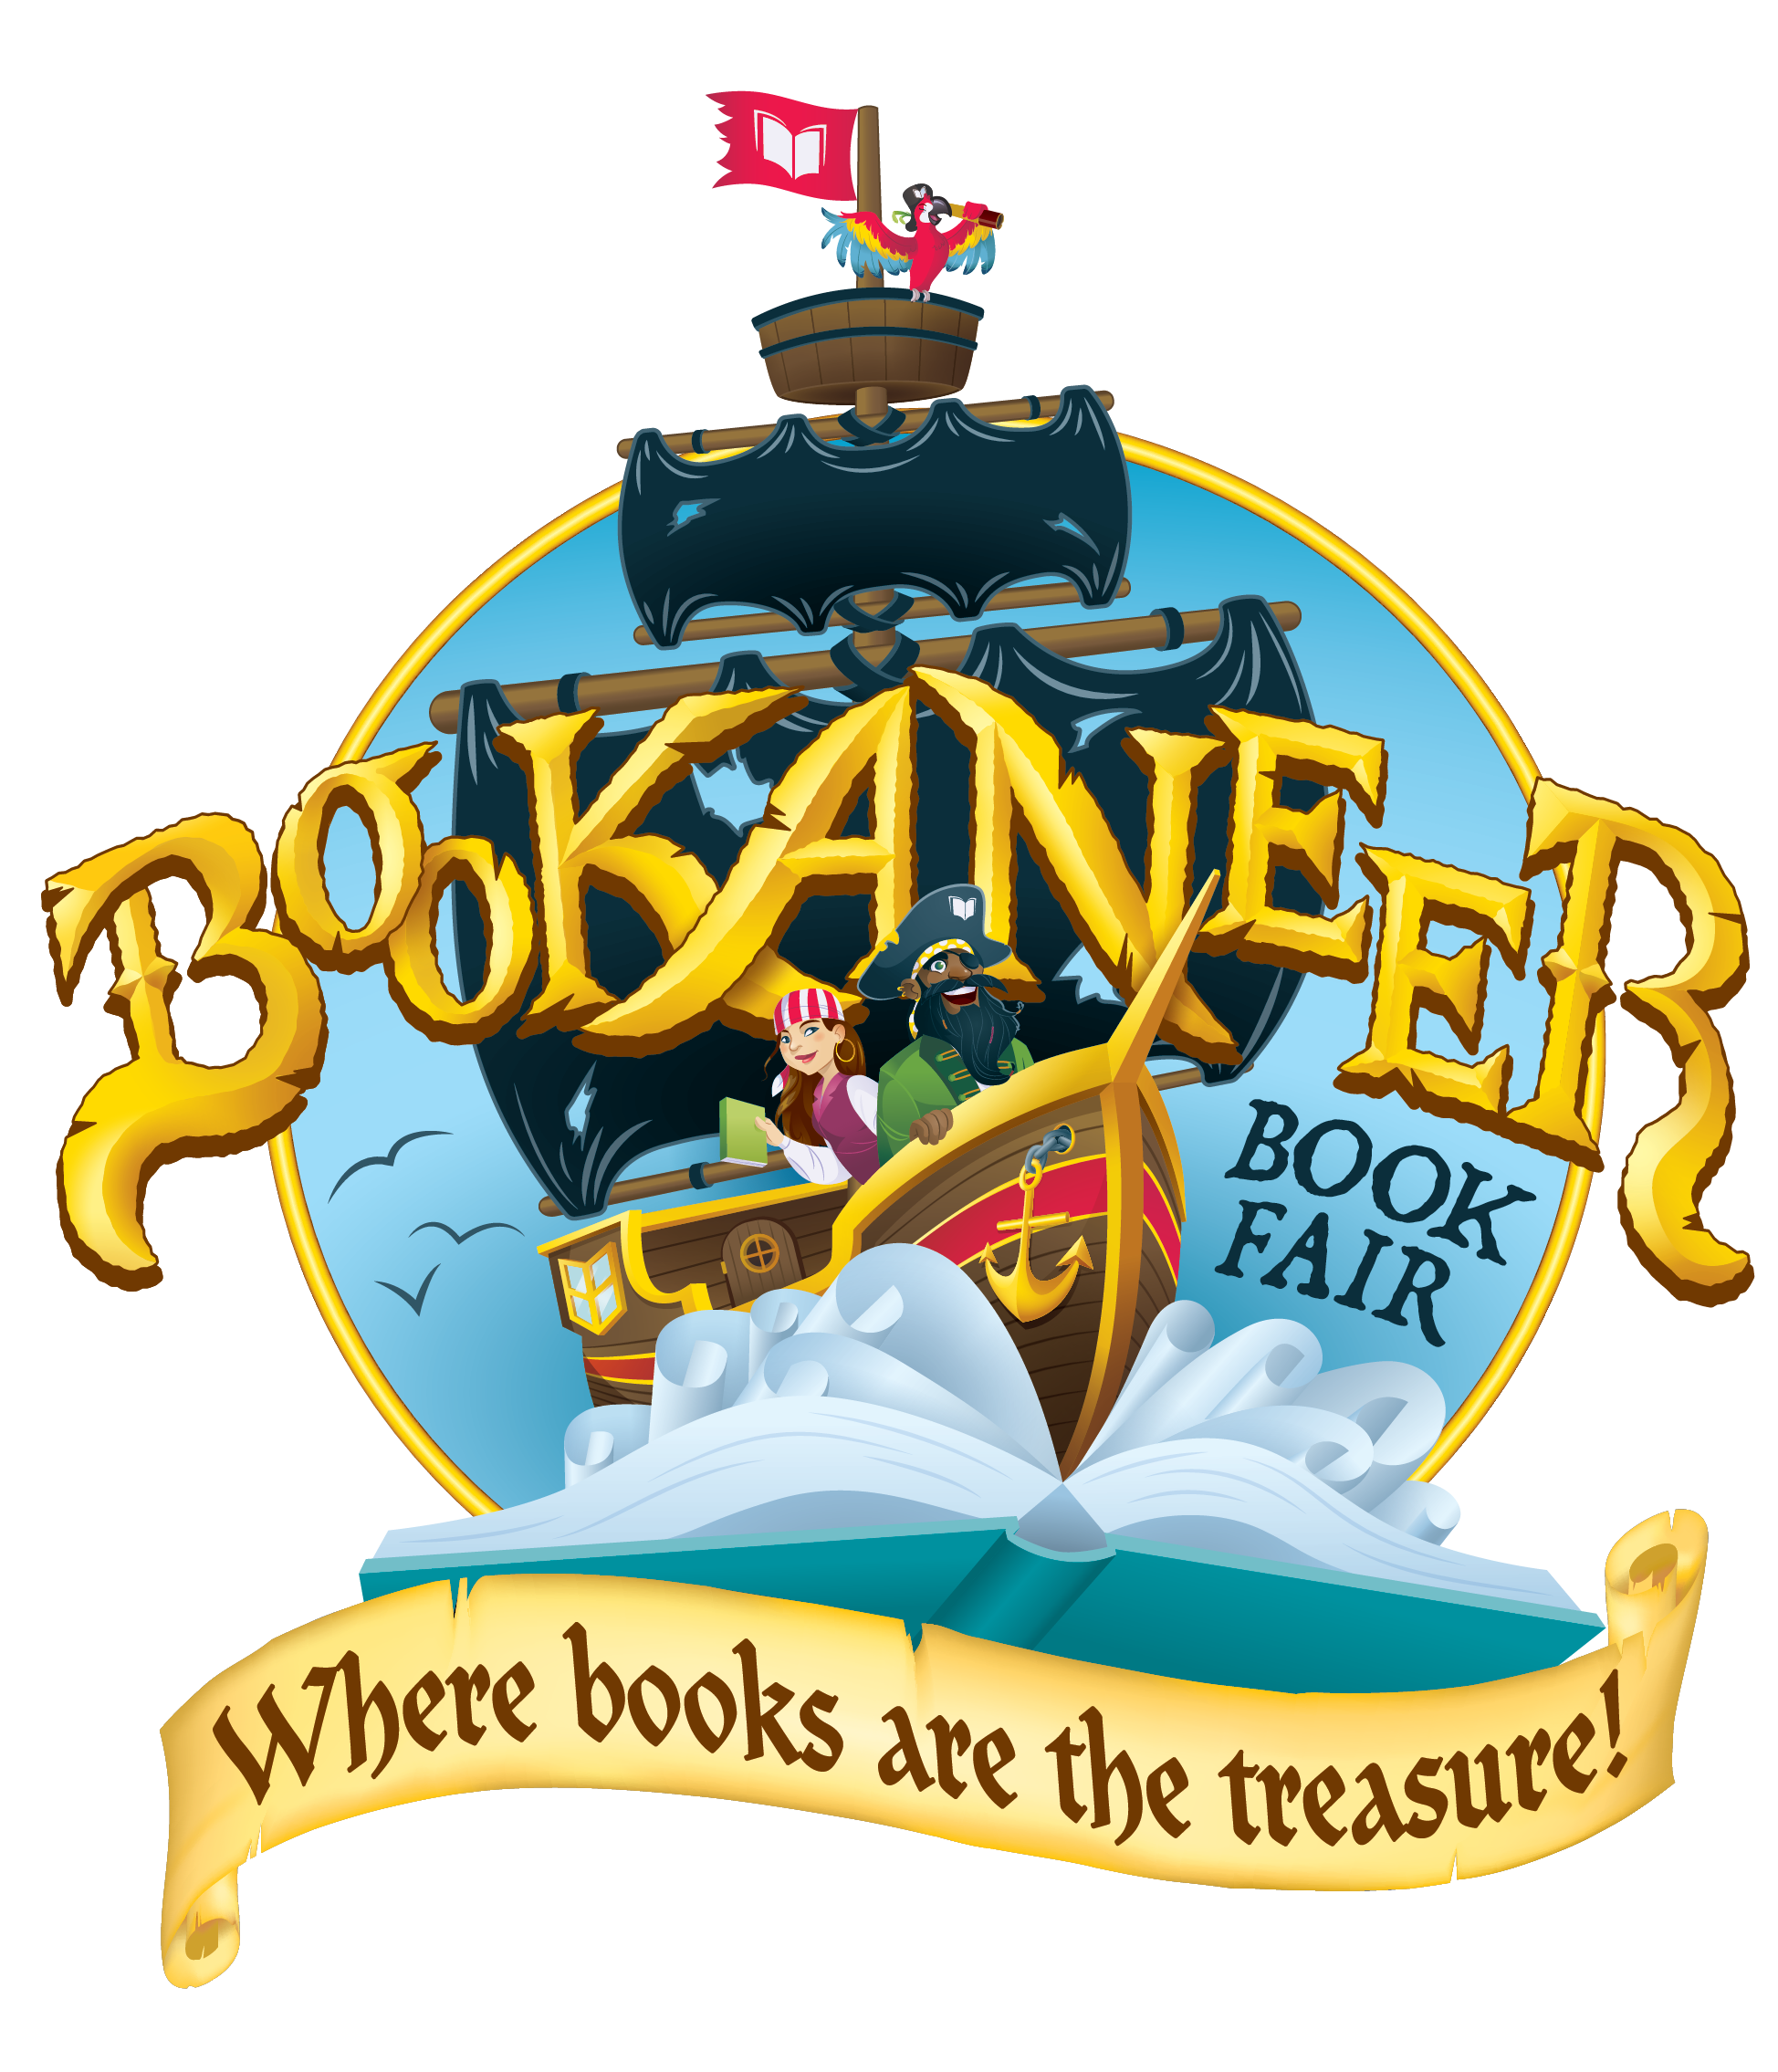 Scholastic book fair clipart picture royalty free download Bookaneer Book Fair: Where Books are the Treasure! | Scholastic Book ... picture royalty free download